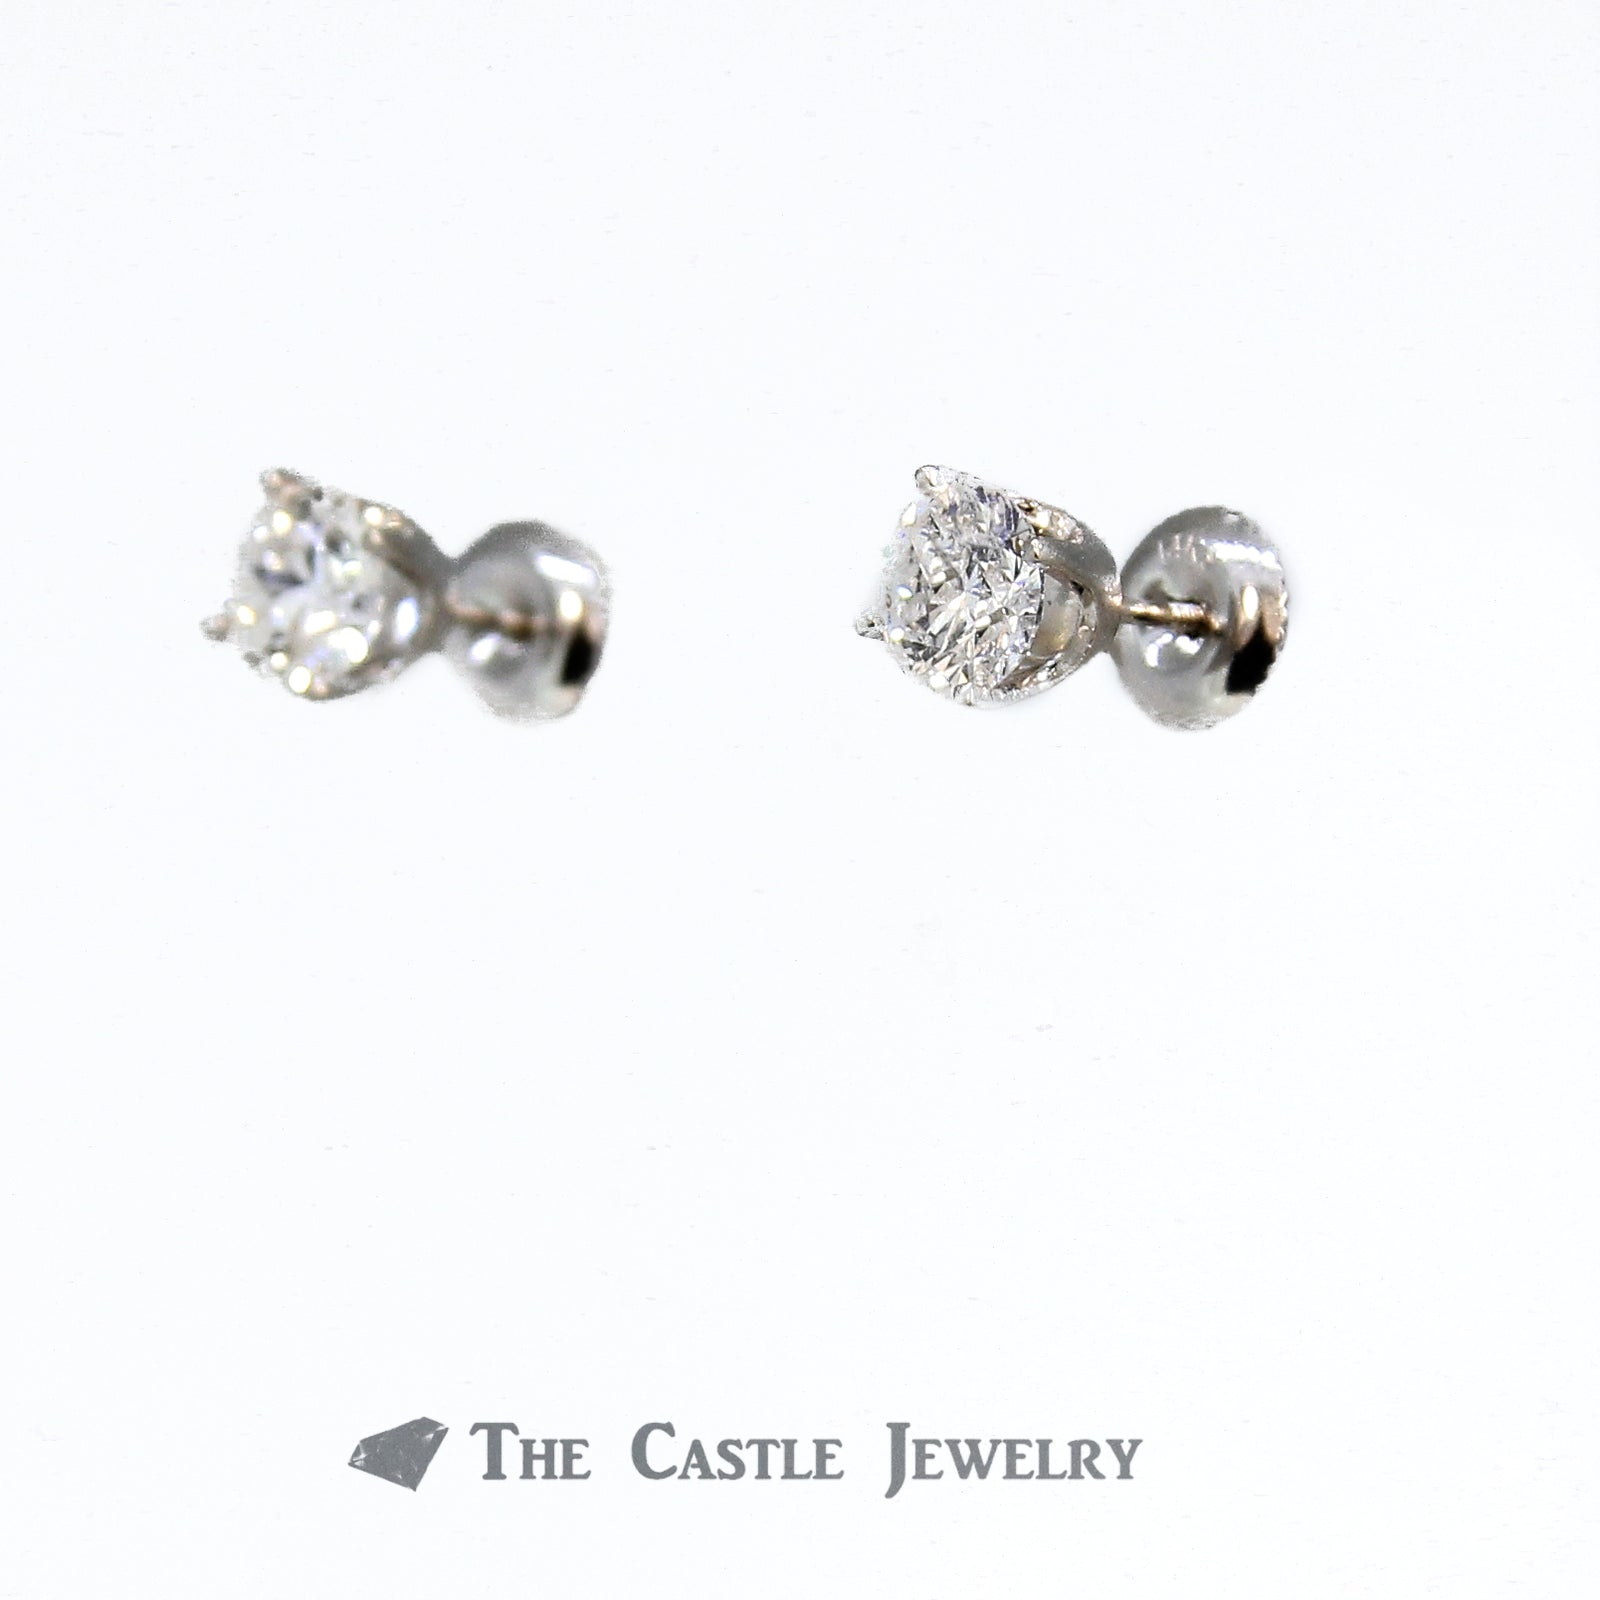 1.50cttw Round Brilliant Cut Diamond Stud Earrings in 14K White Gold-1